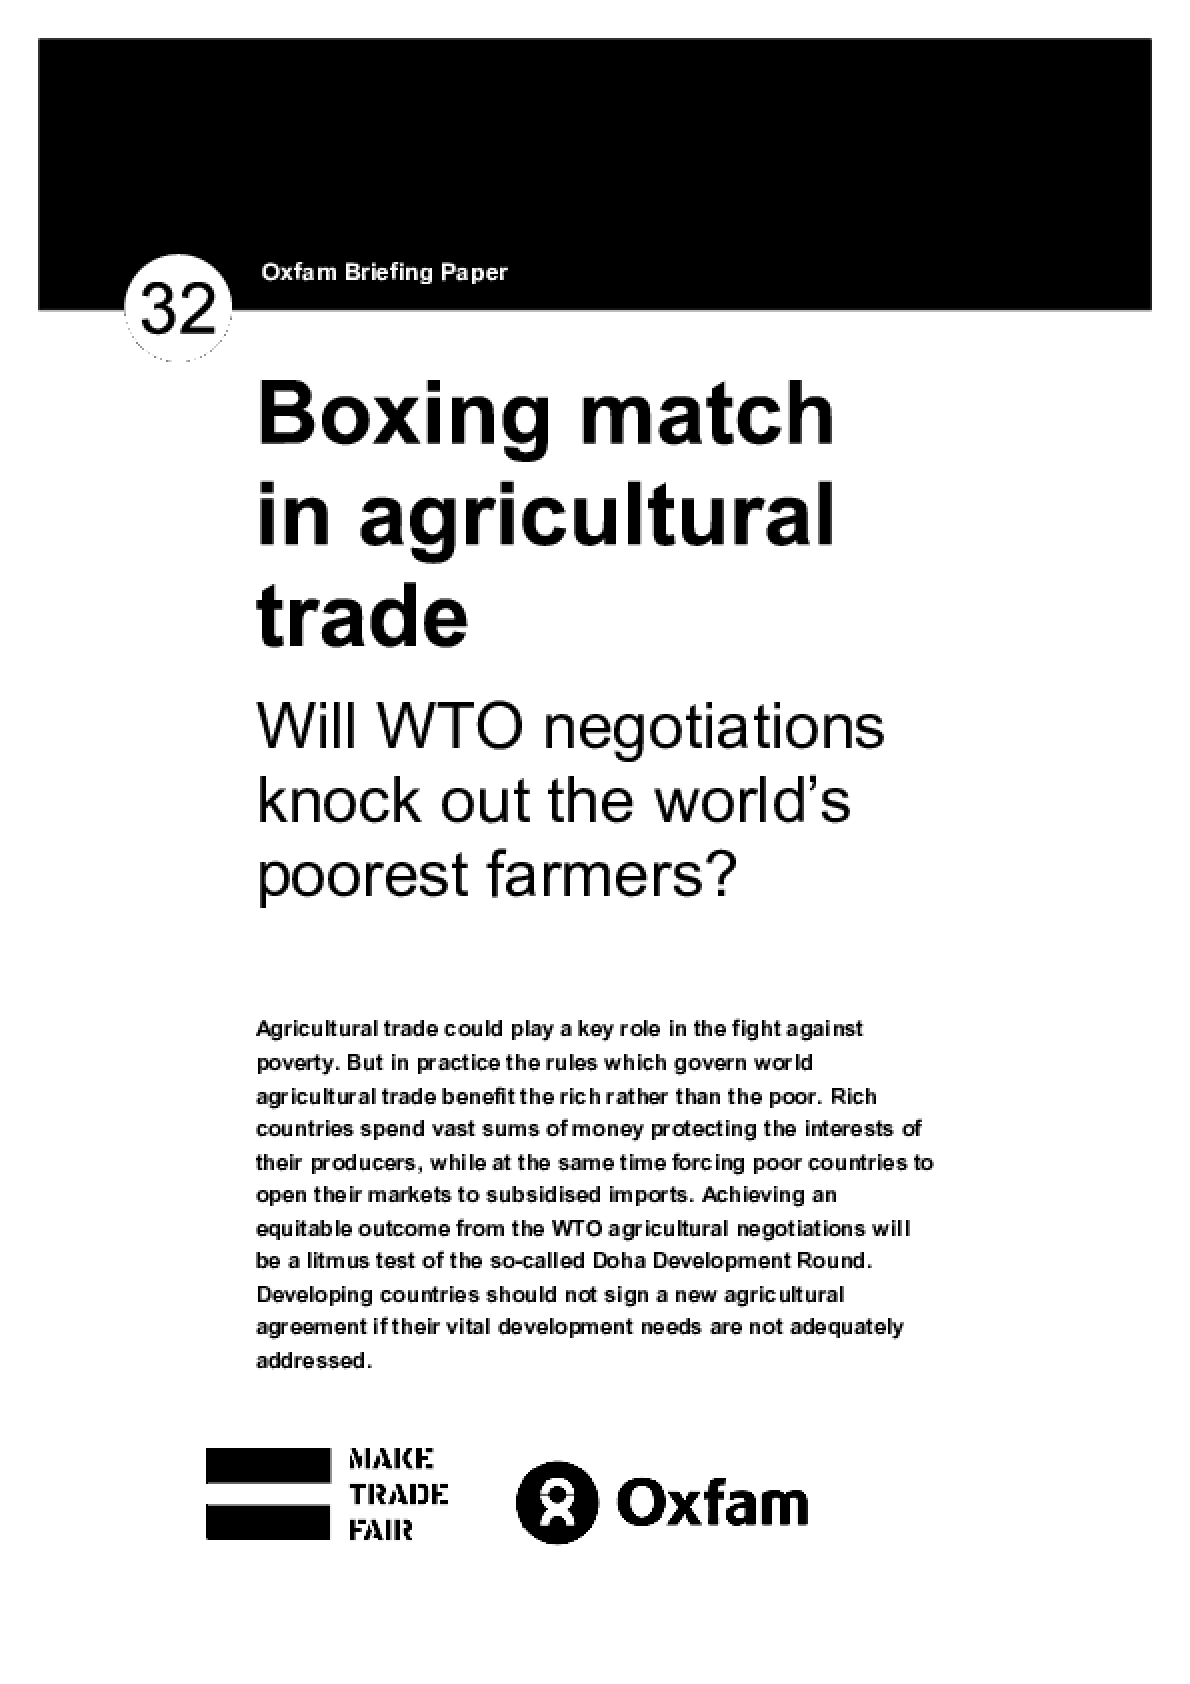 Boxing Match in Agricultural Trade: Will WTO negotiations knock out the worlds poorest farmers?